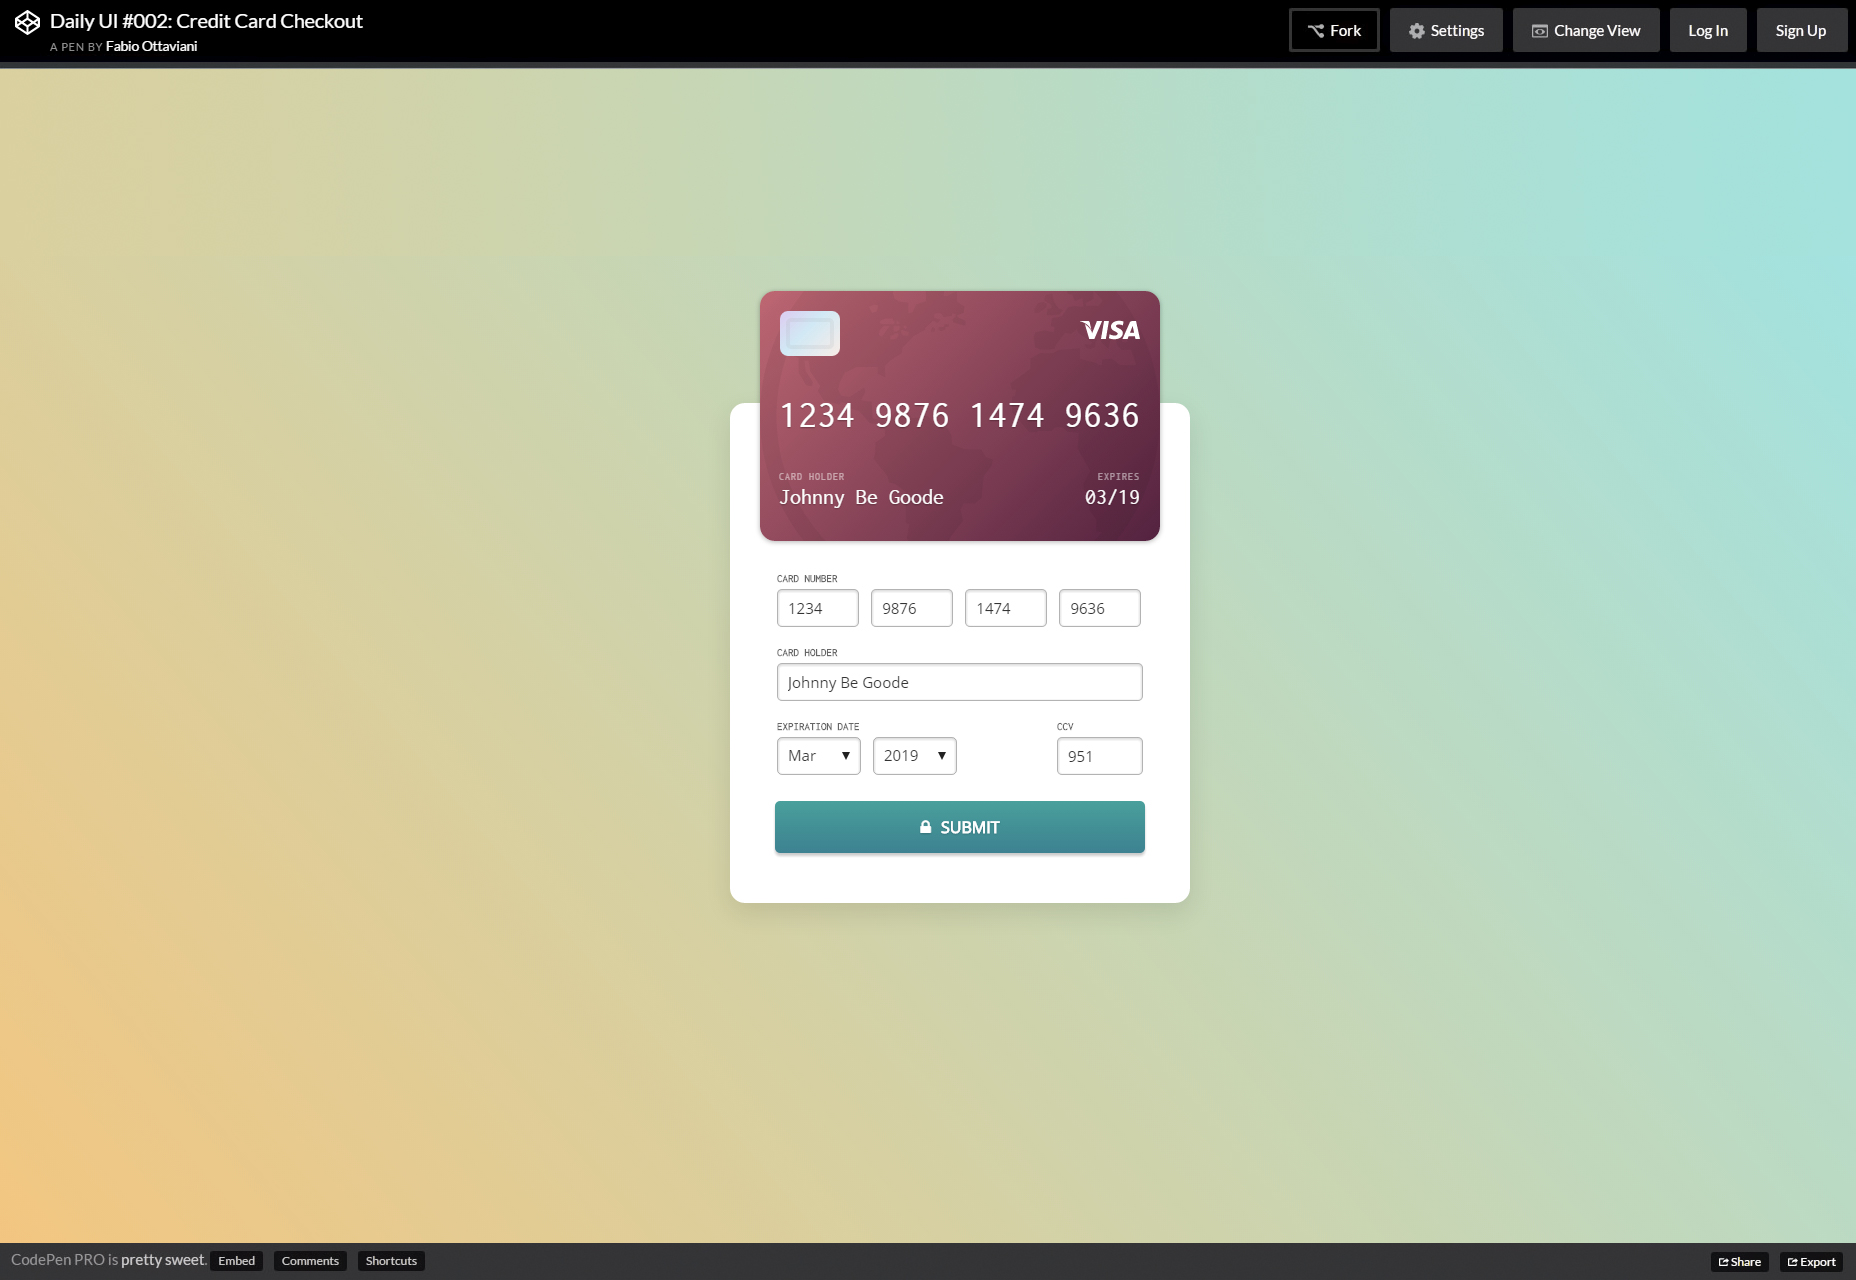 Live Credit Card Mockup Checkout Form